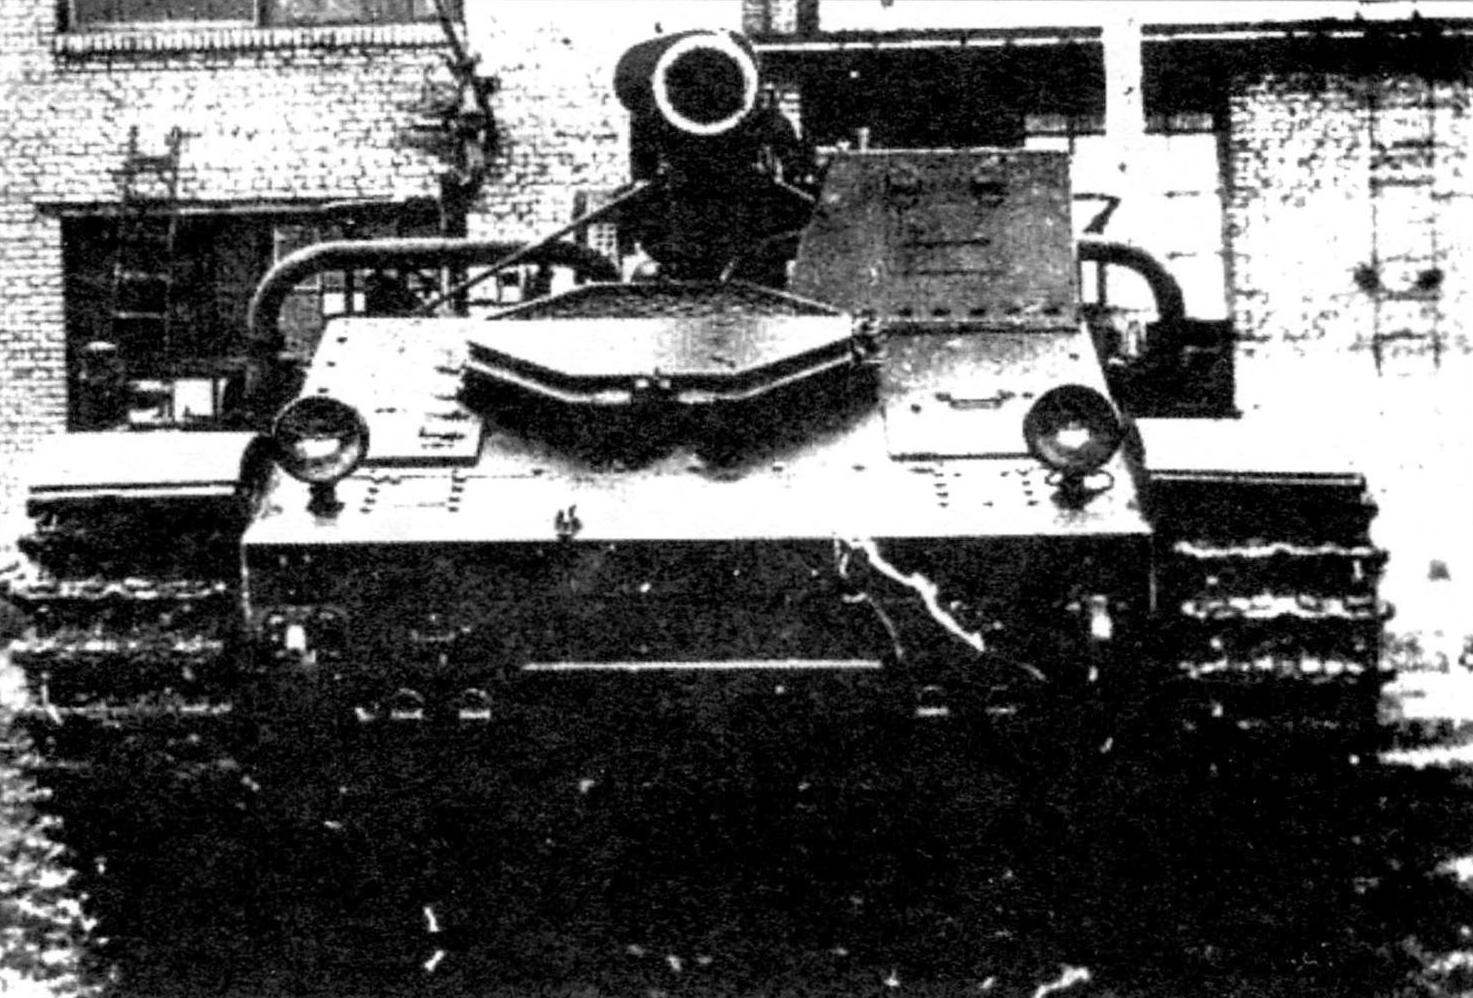 The bow of the hull su-14 is borrowed from a heavy tank T-35. On the left side on the upper sheet - driver's hatch and the observation tower